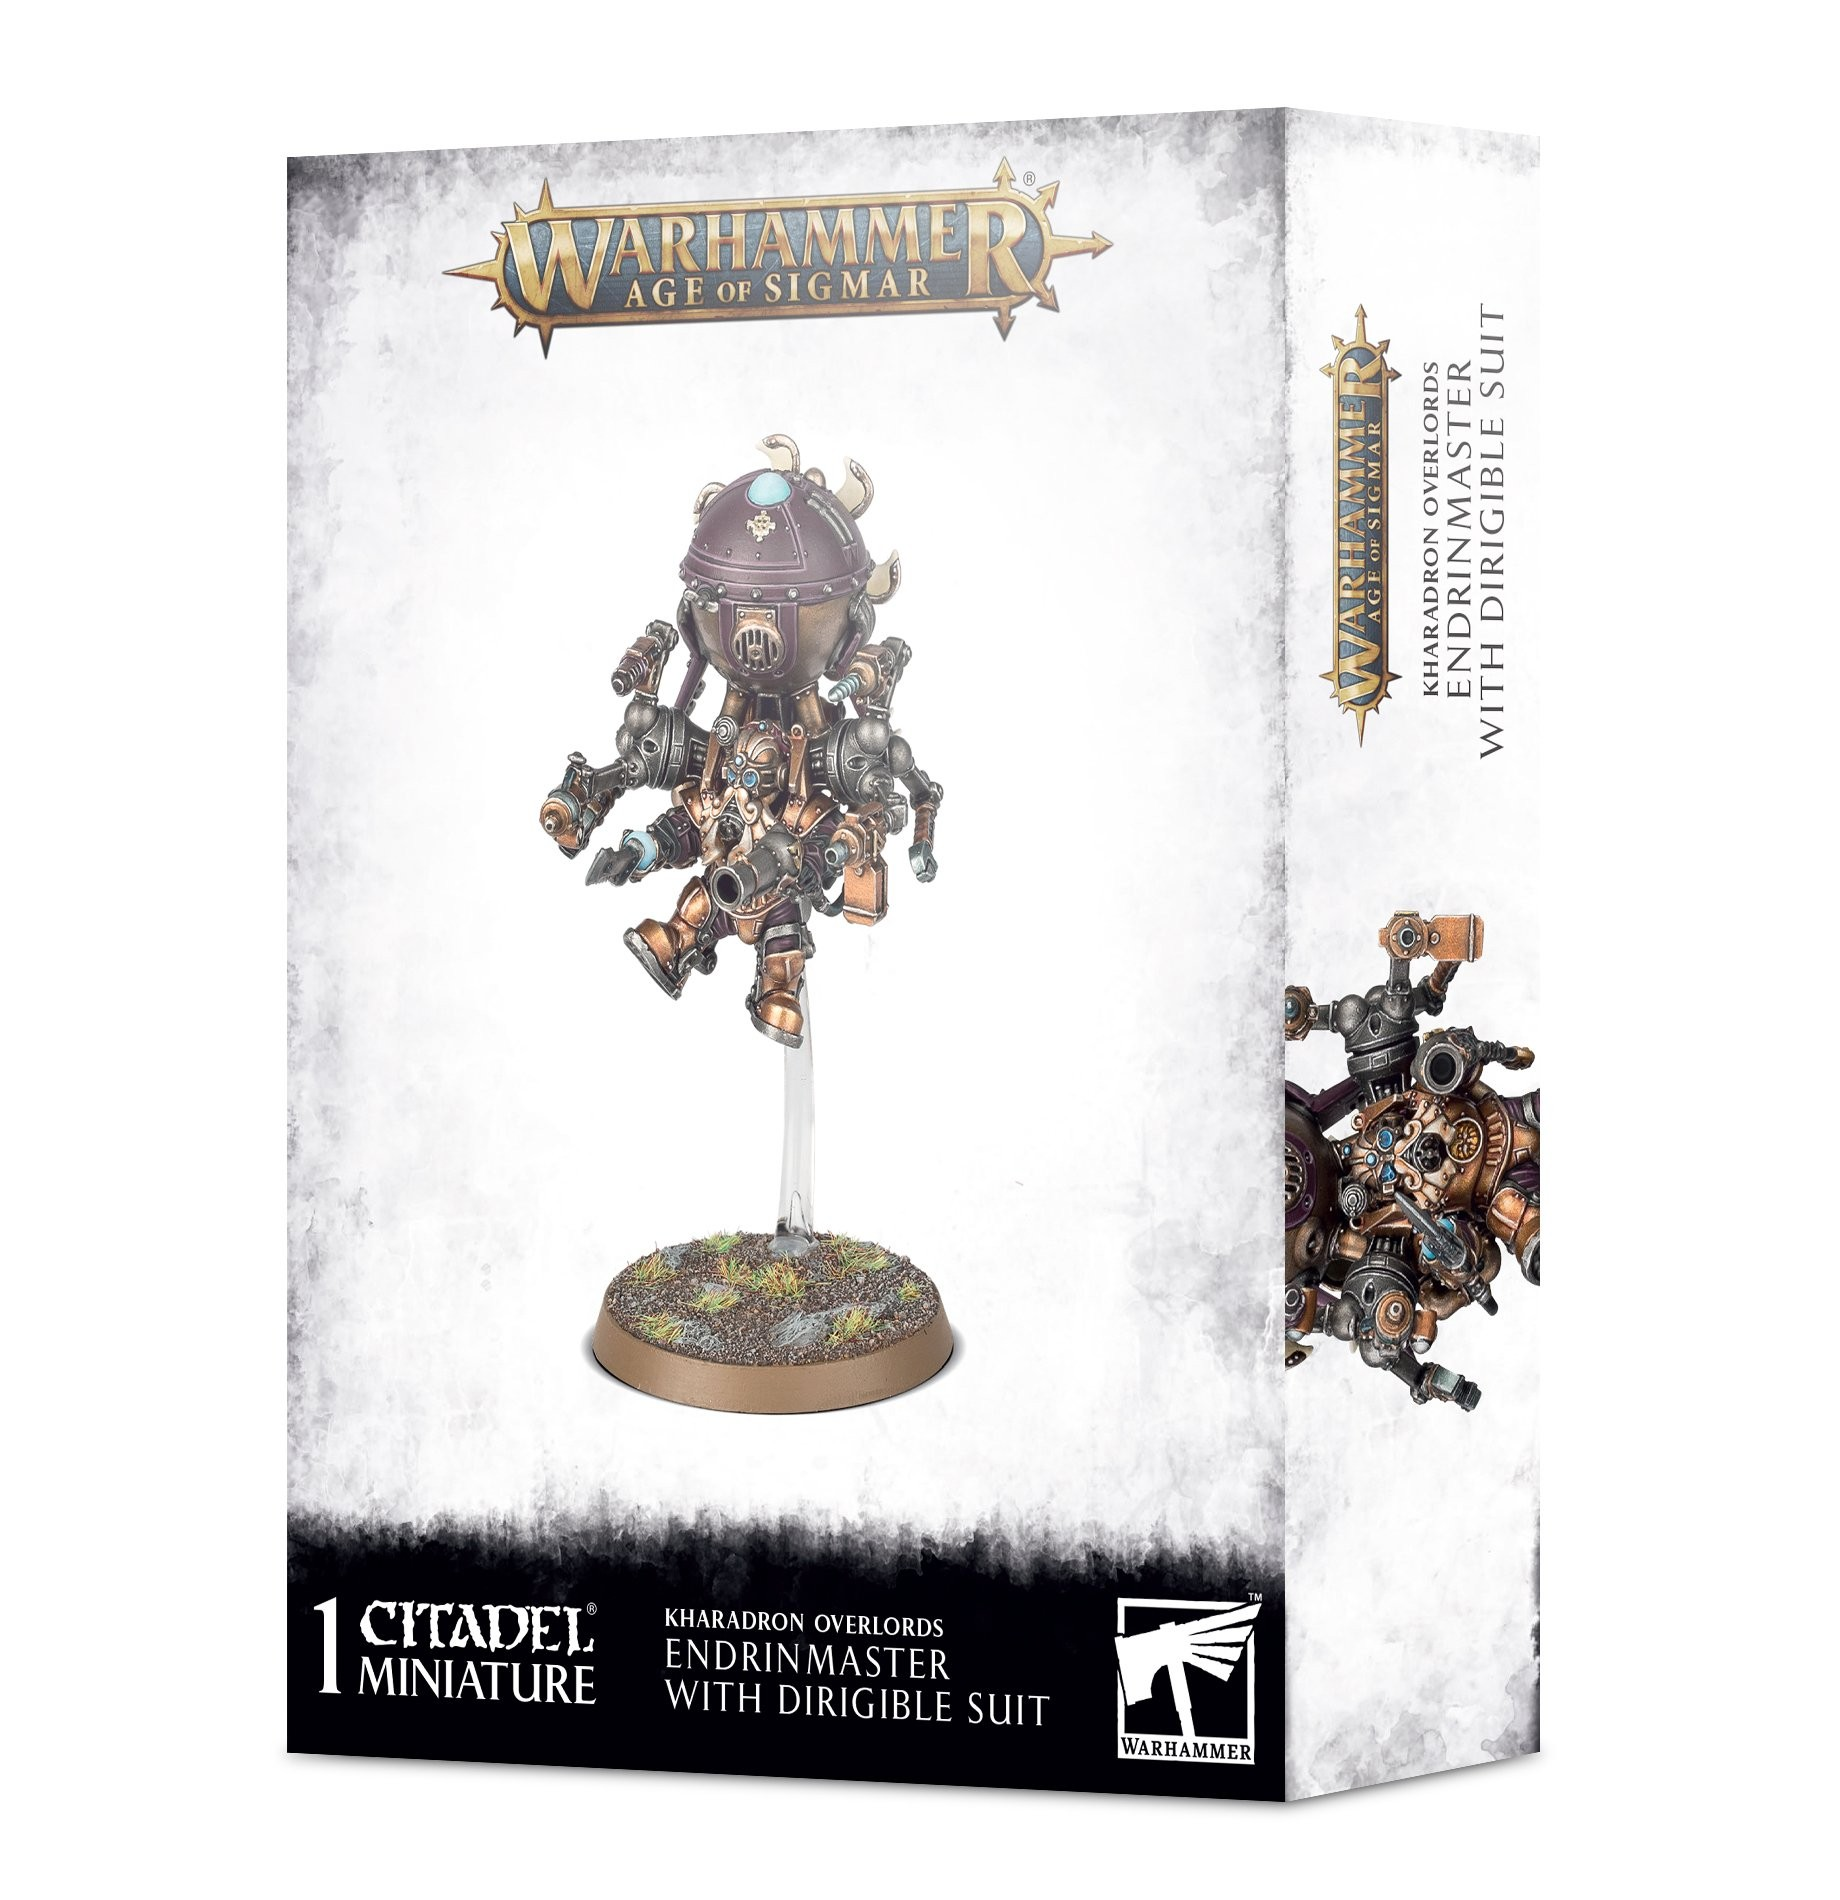 Warhammer Age of Sigmar: Kharadron Overlords Endrinmaster in Dirigible Suit